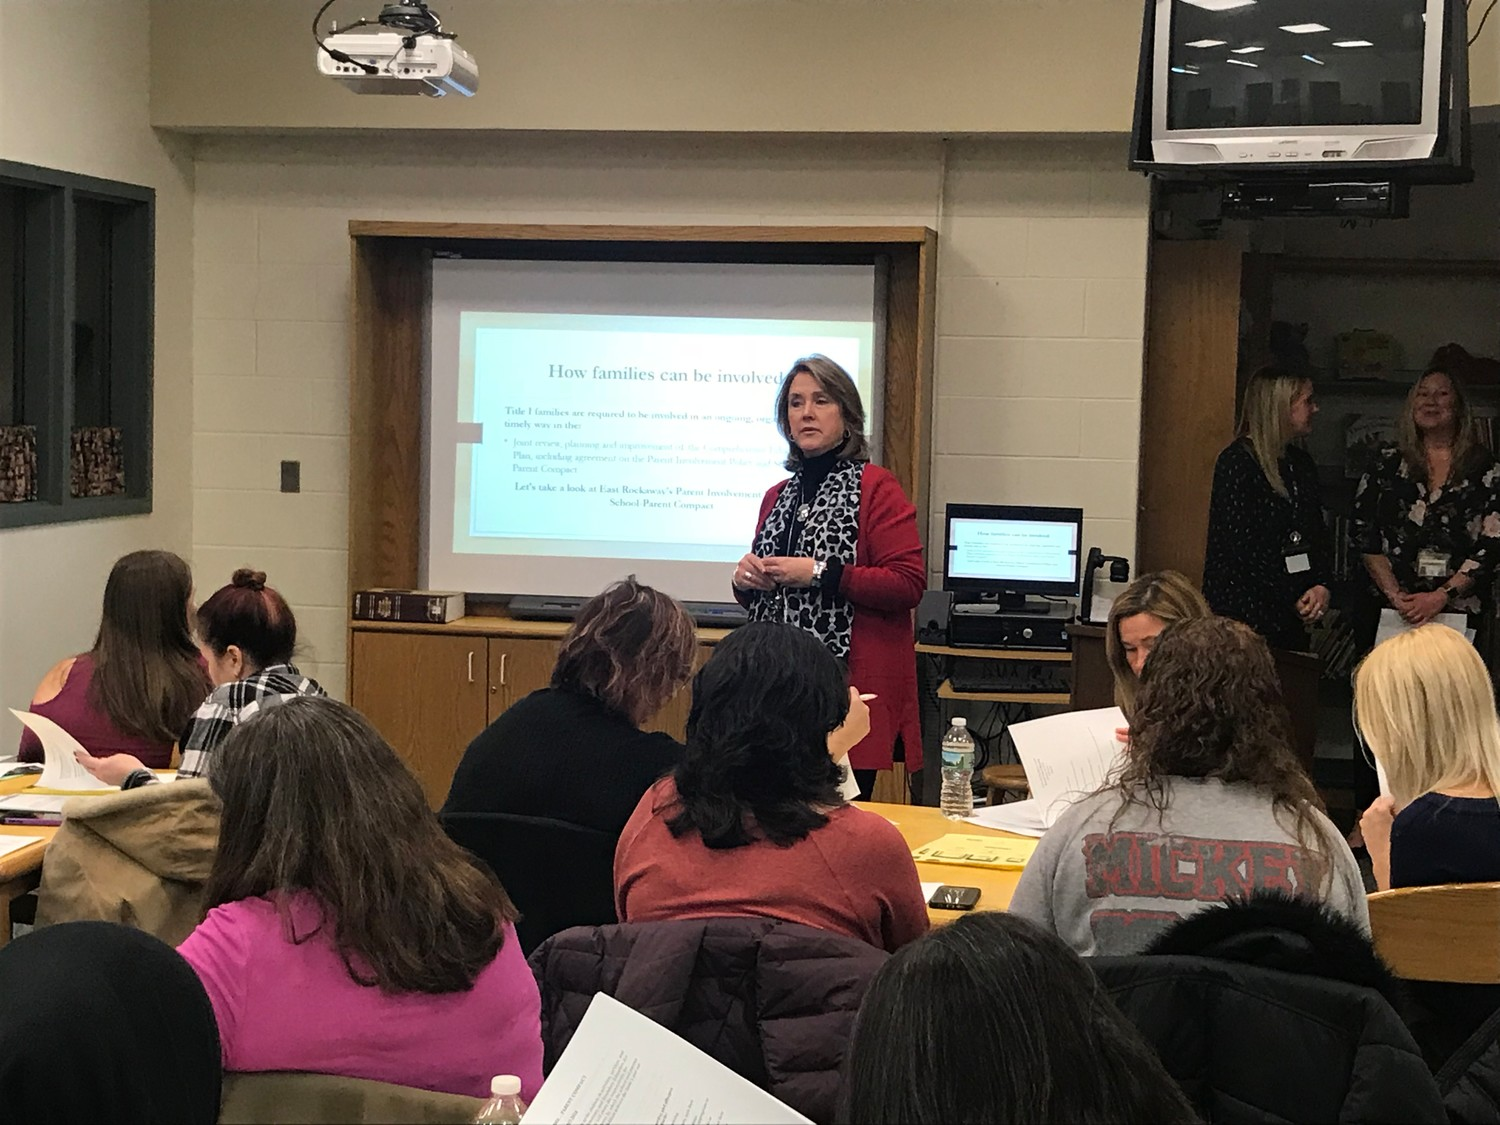 Mona Hecht, East Rockaway's assistant superintendent of curriculum and instruction, explained that under the Title 1 Program, the district receives federal funds to provide support for students.